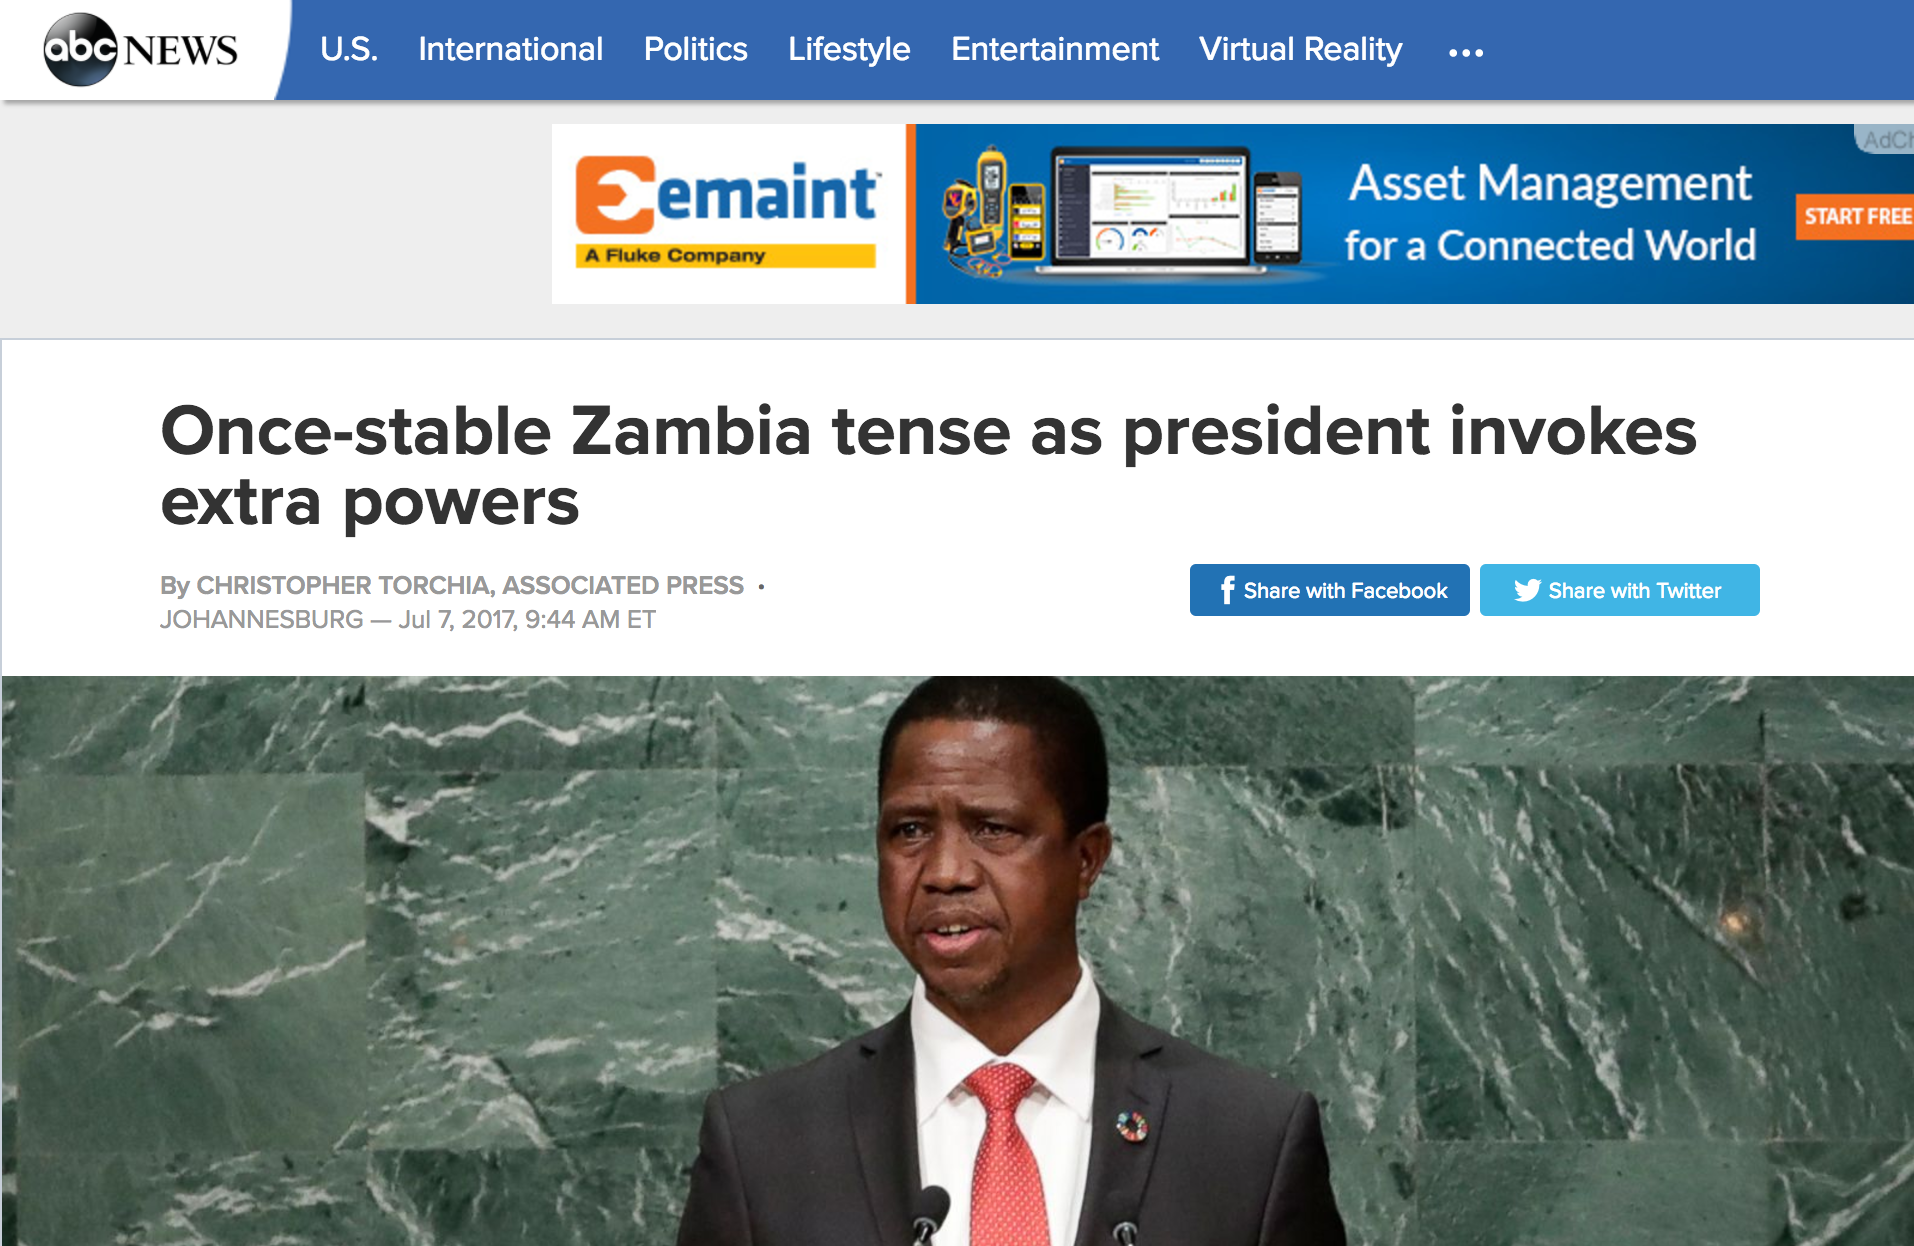 Abc news USA: These are edgy times inZambia